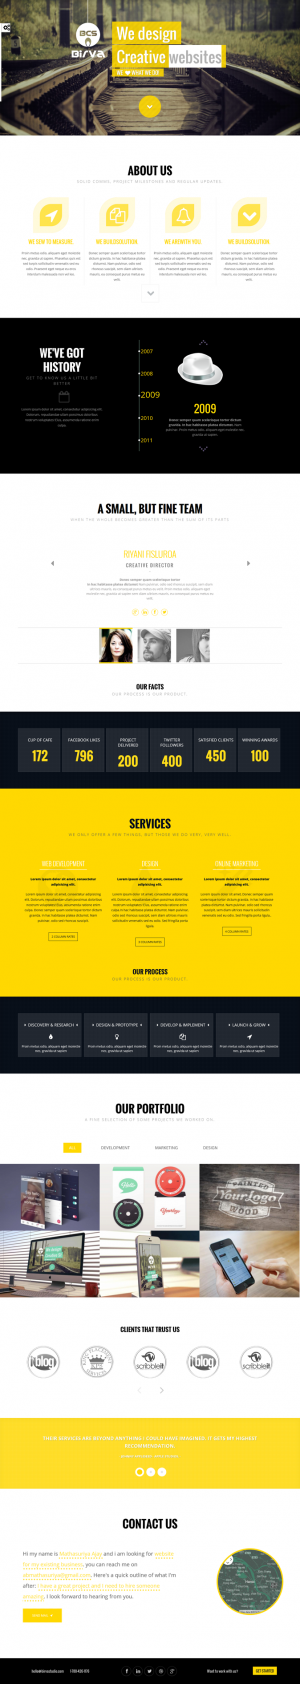 BIRVA is a perfect theme for a variety of uses from blogs to personal or business portfolios.